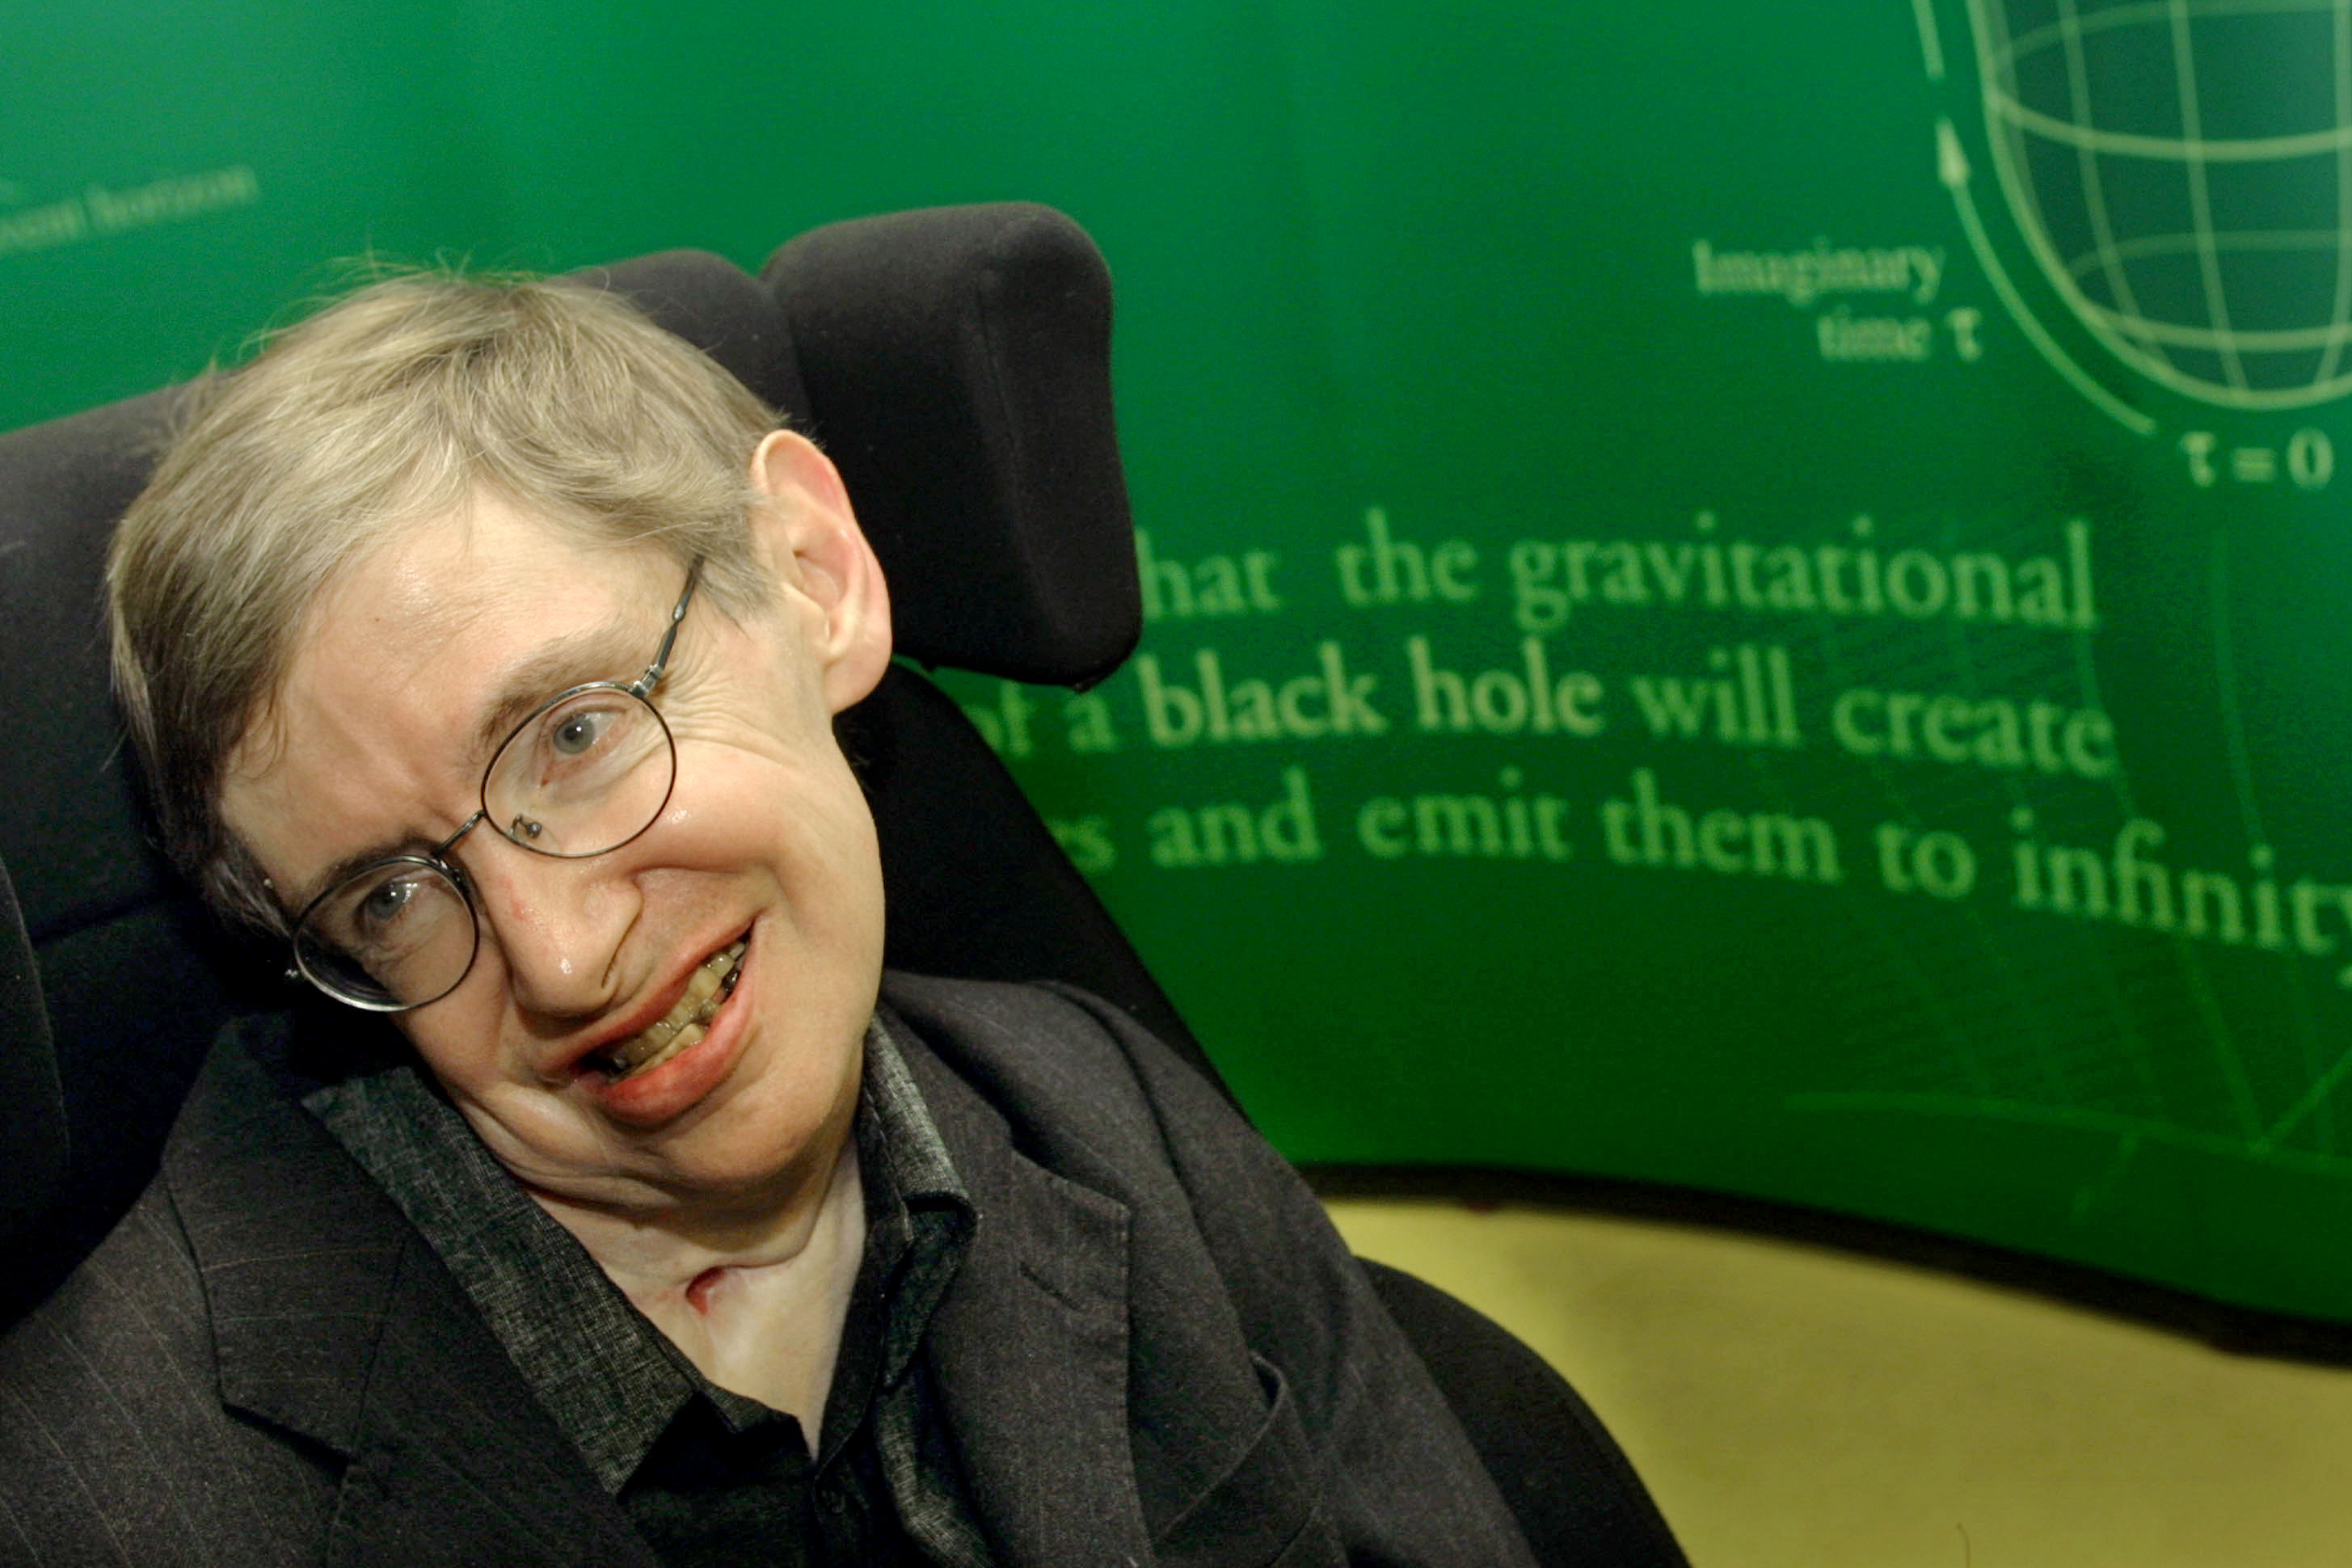 Physicist Stephen Hawking dead at age 76